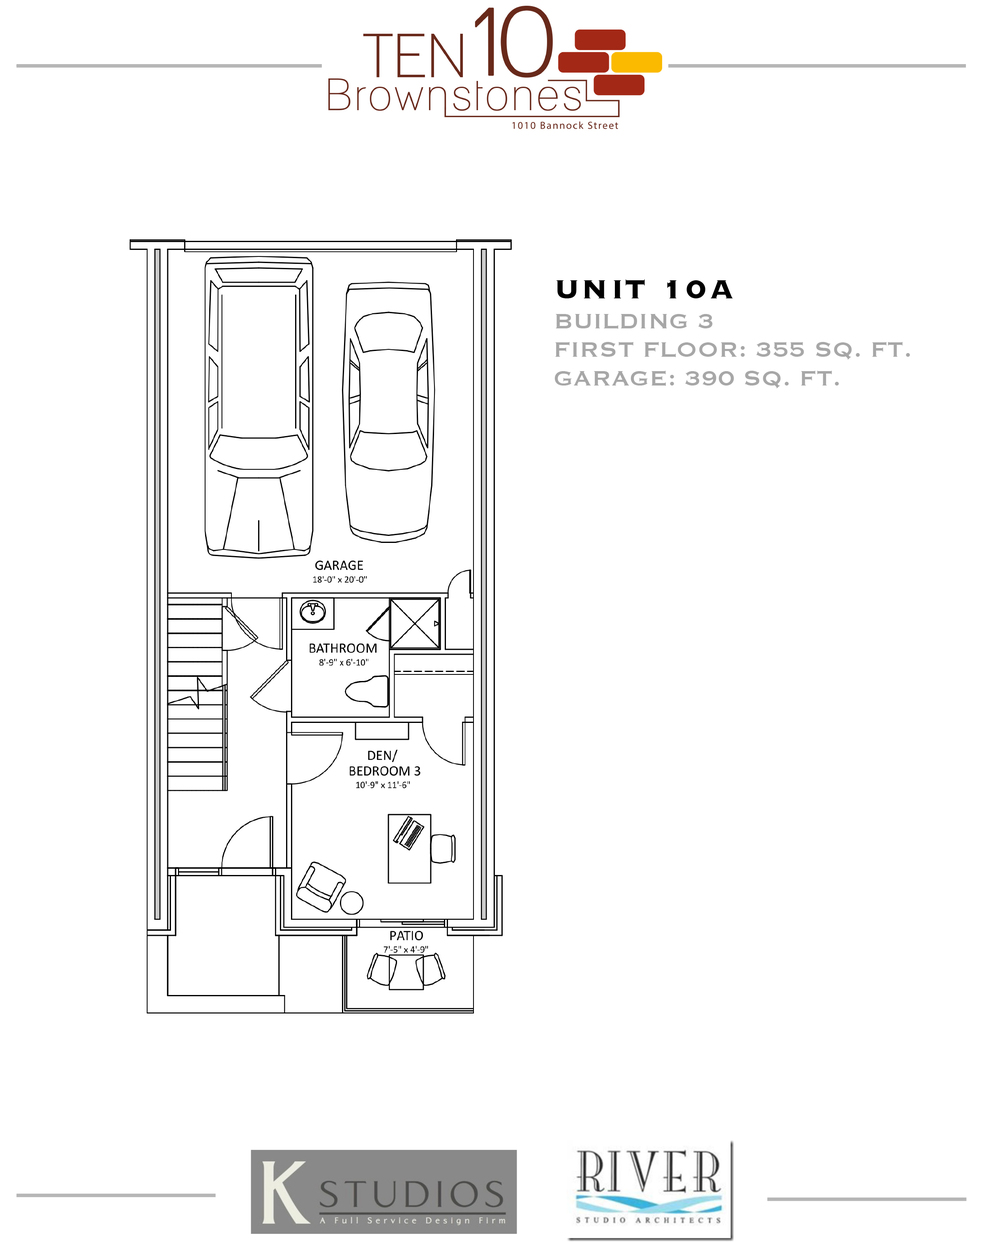 Click image to view & download Unit 10A floor plan